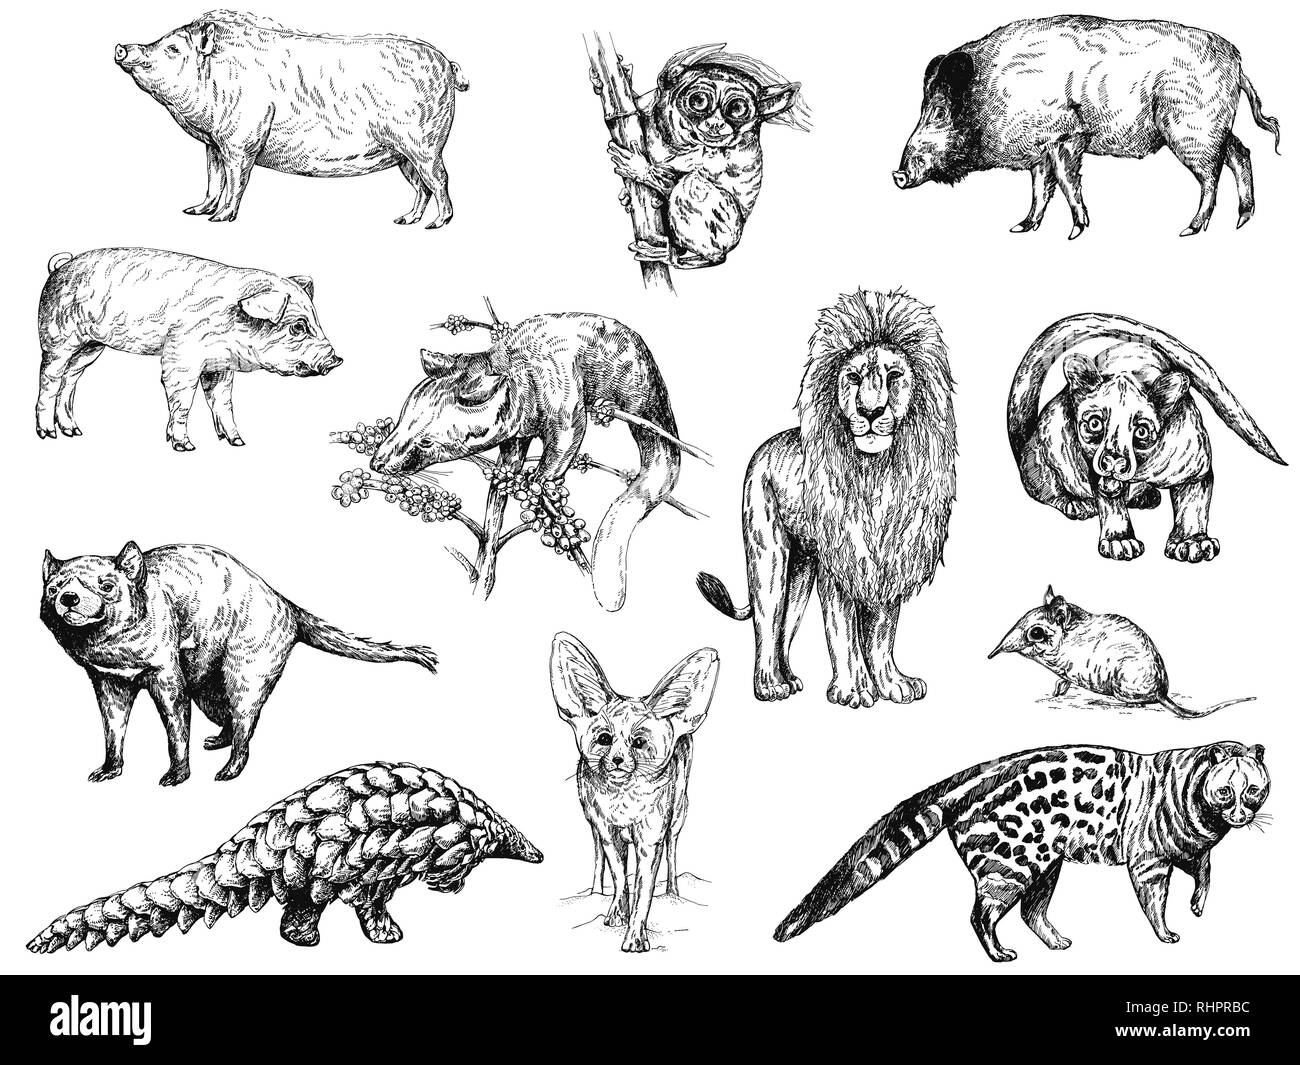 Big set of different hand drawn sketch style animals isolated on white background. Vector illustration. - Stock Image